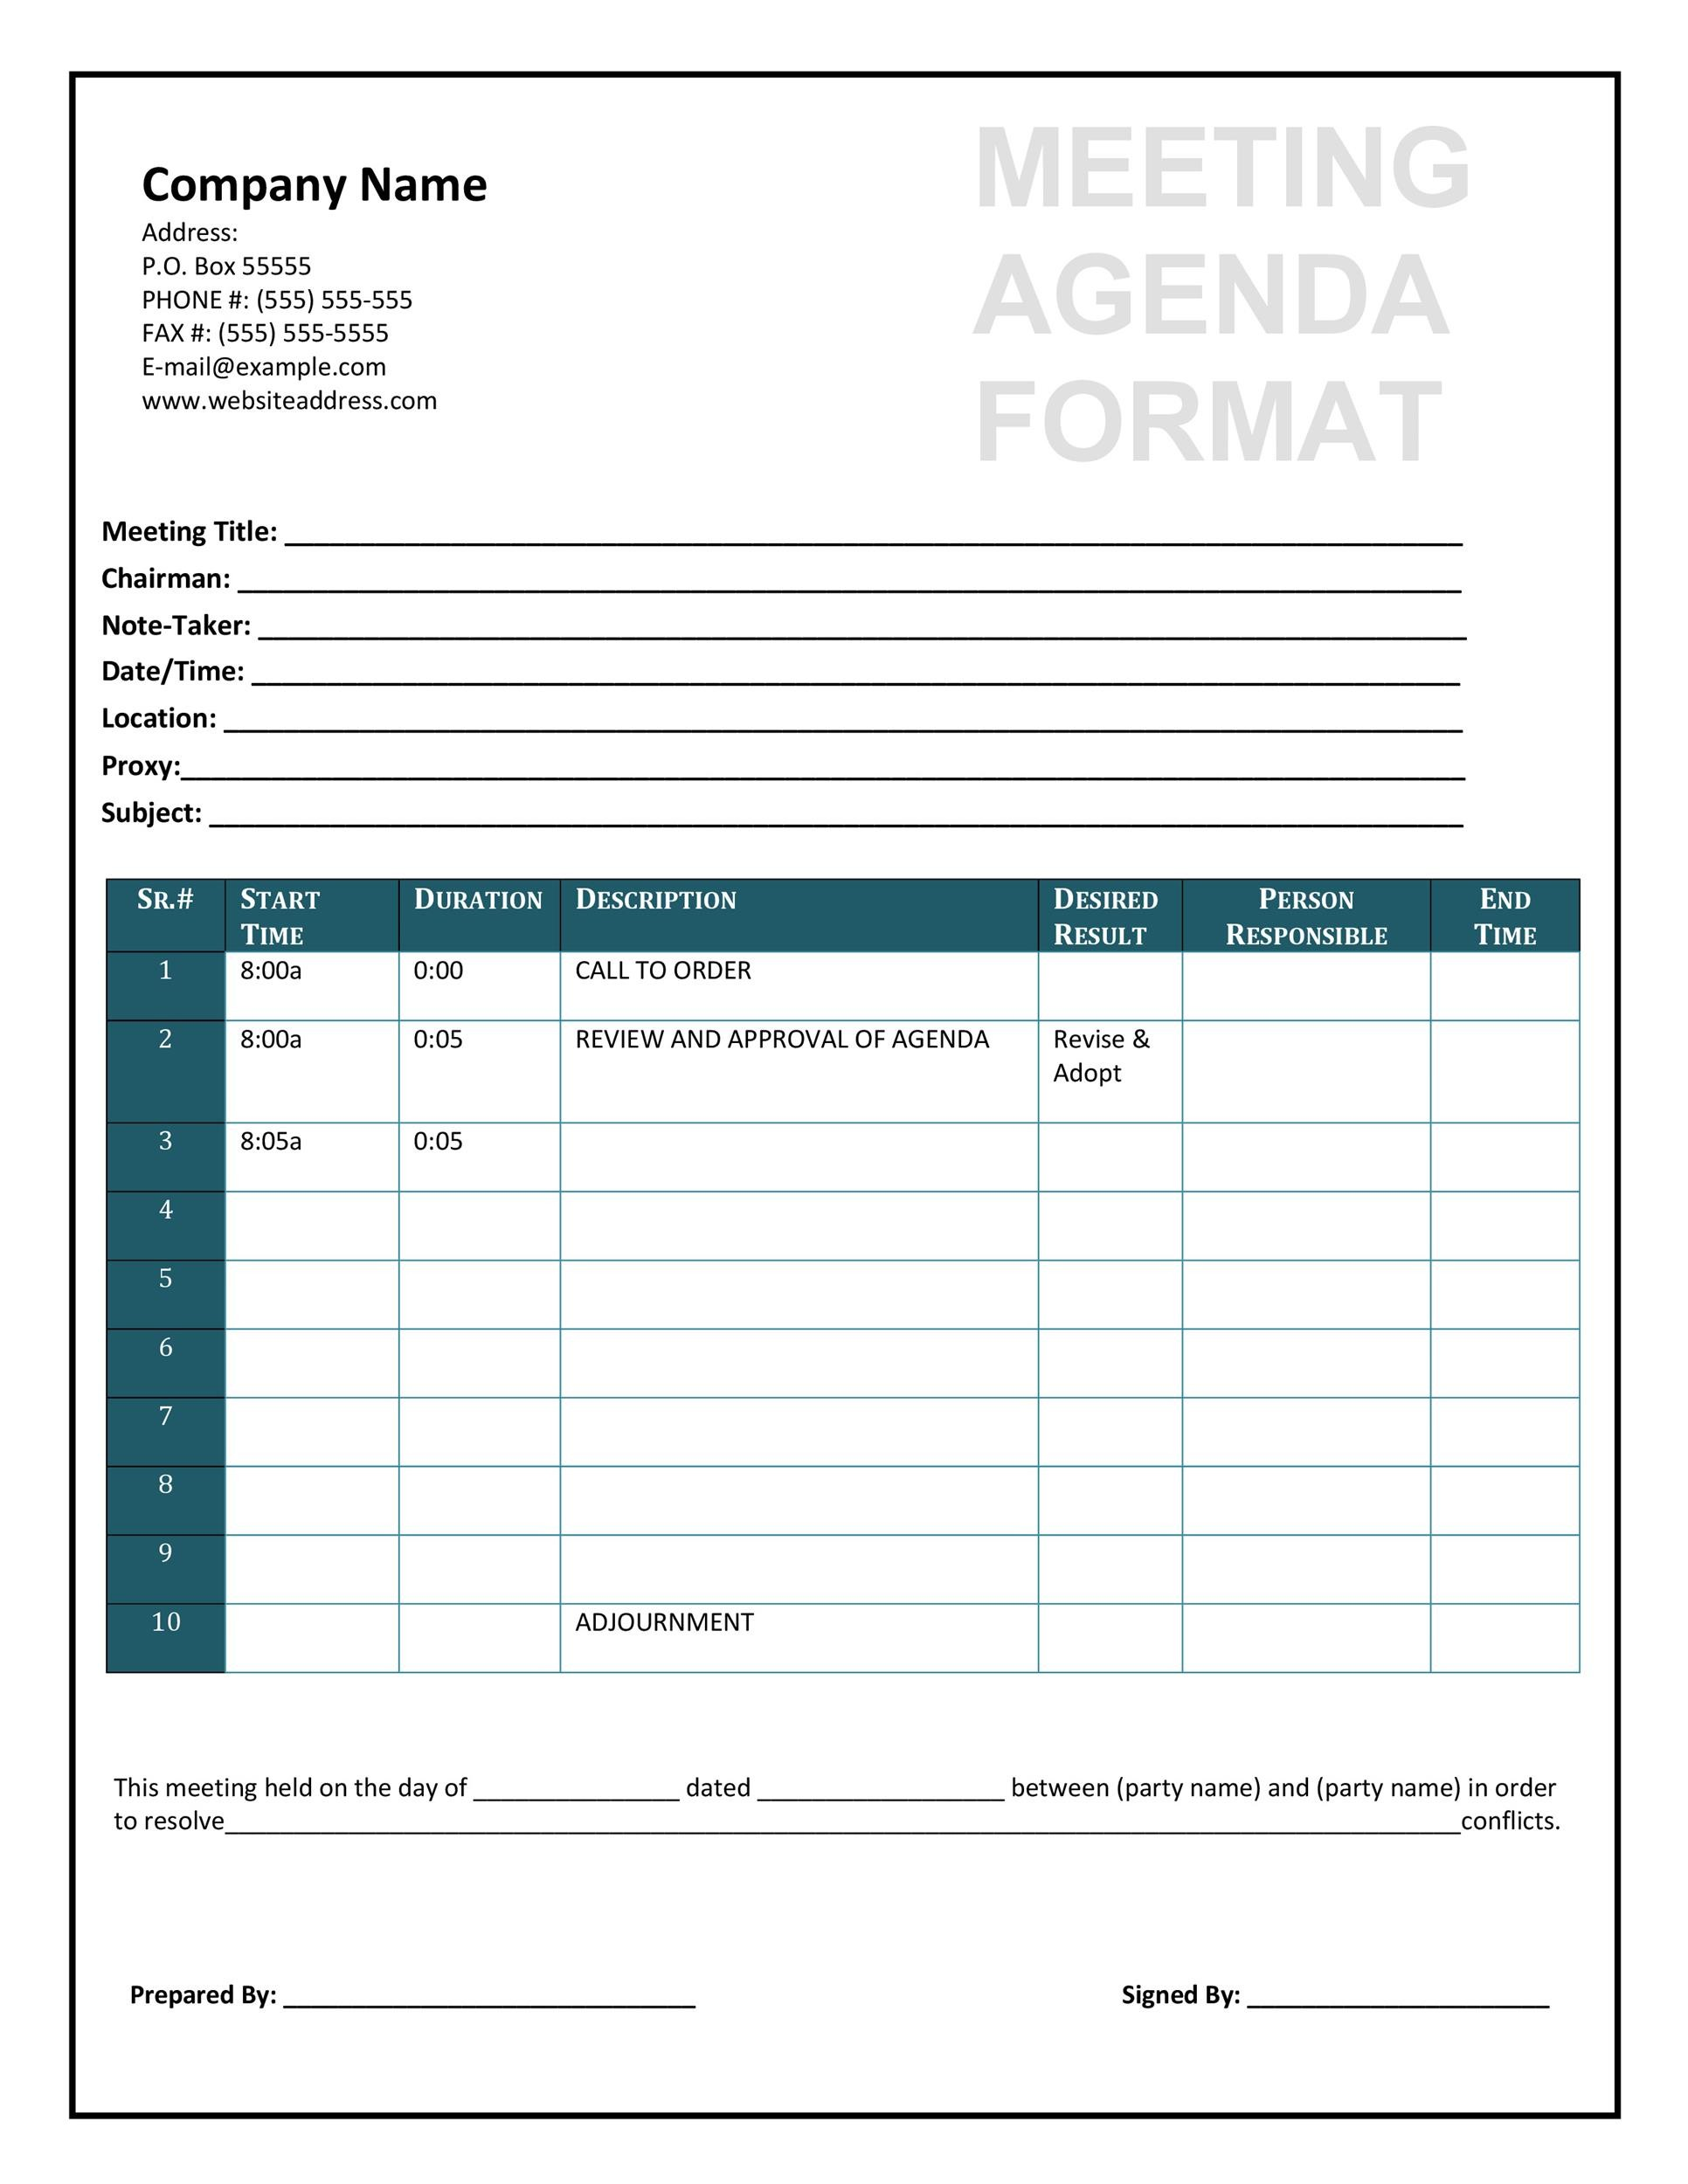 Printable Meeting Agenda Template 09  Blank Meeting Agenda Template